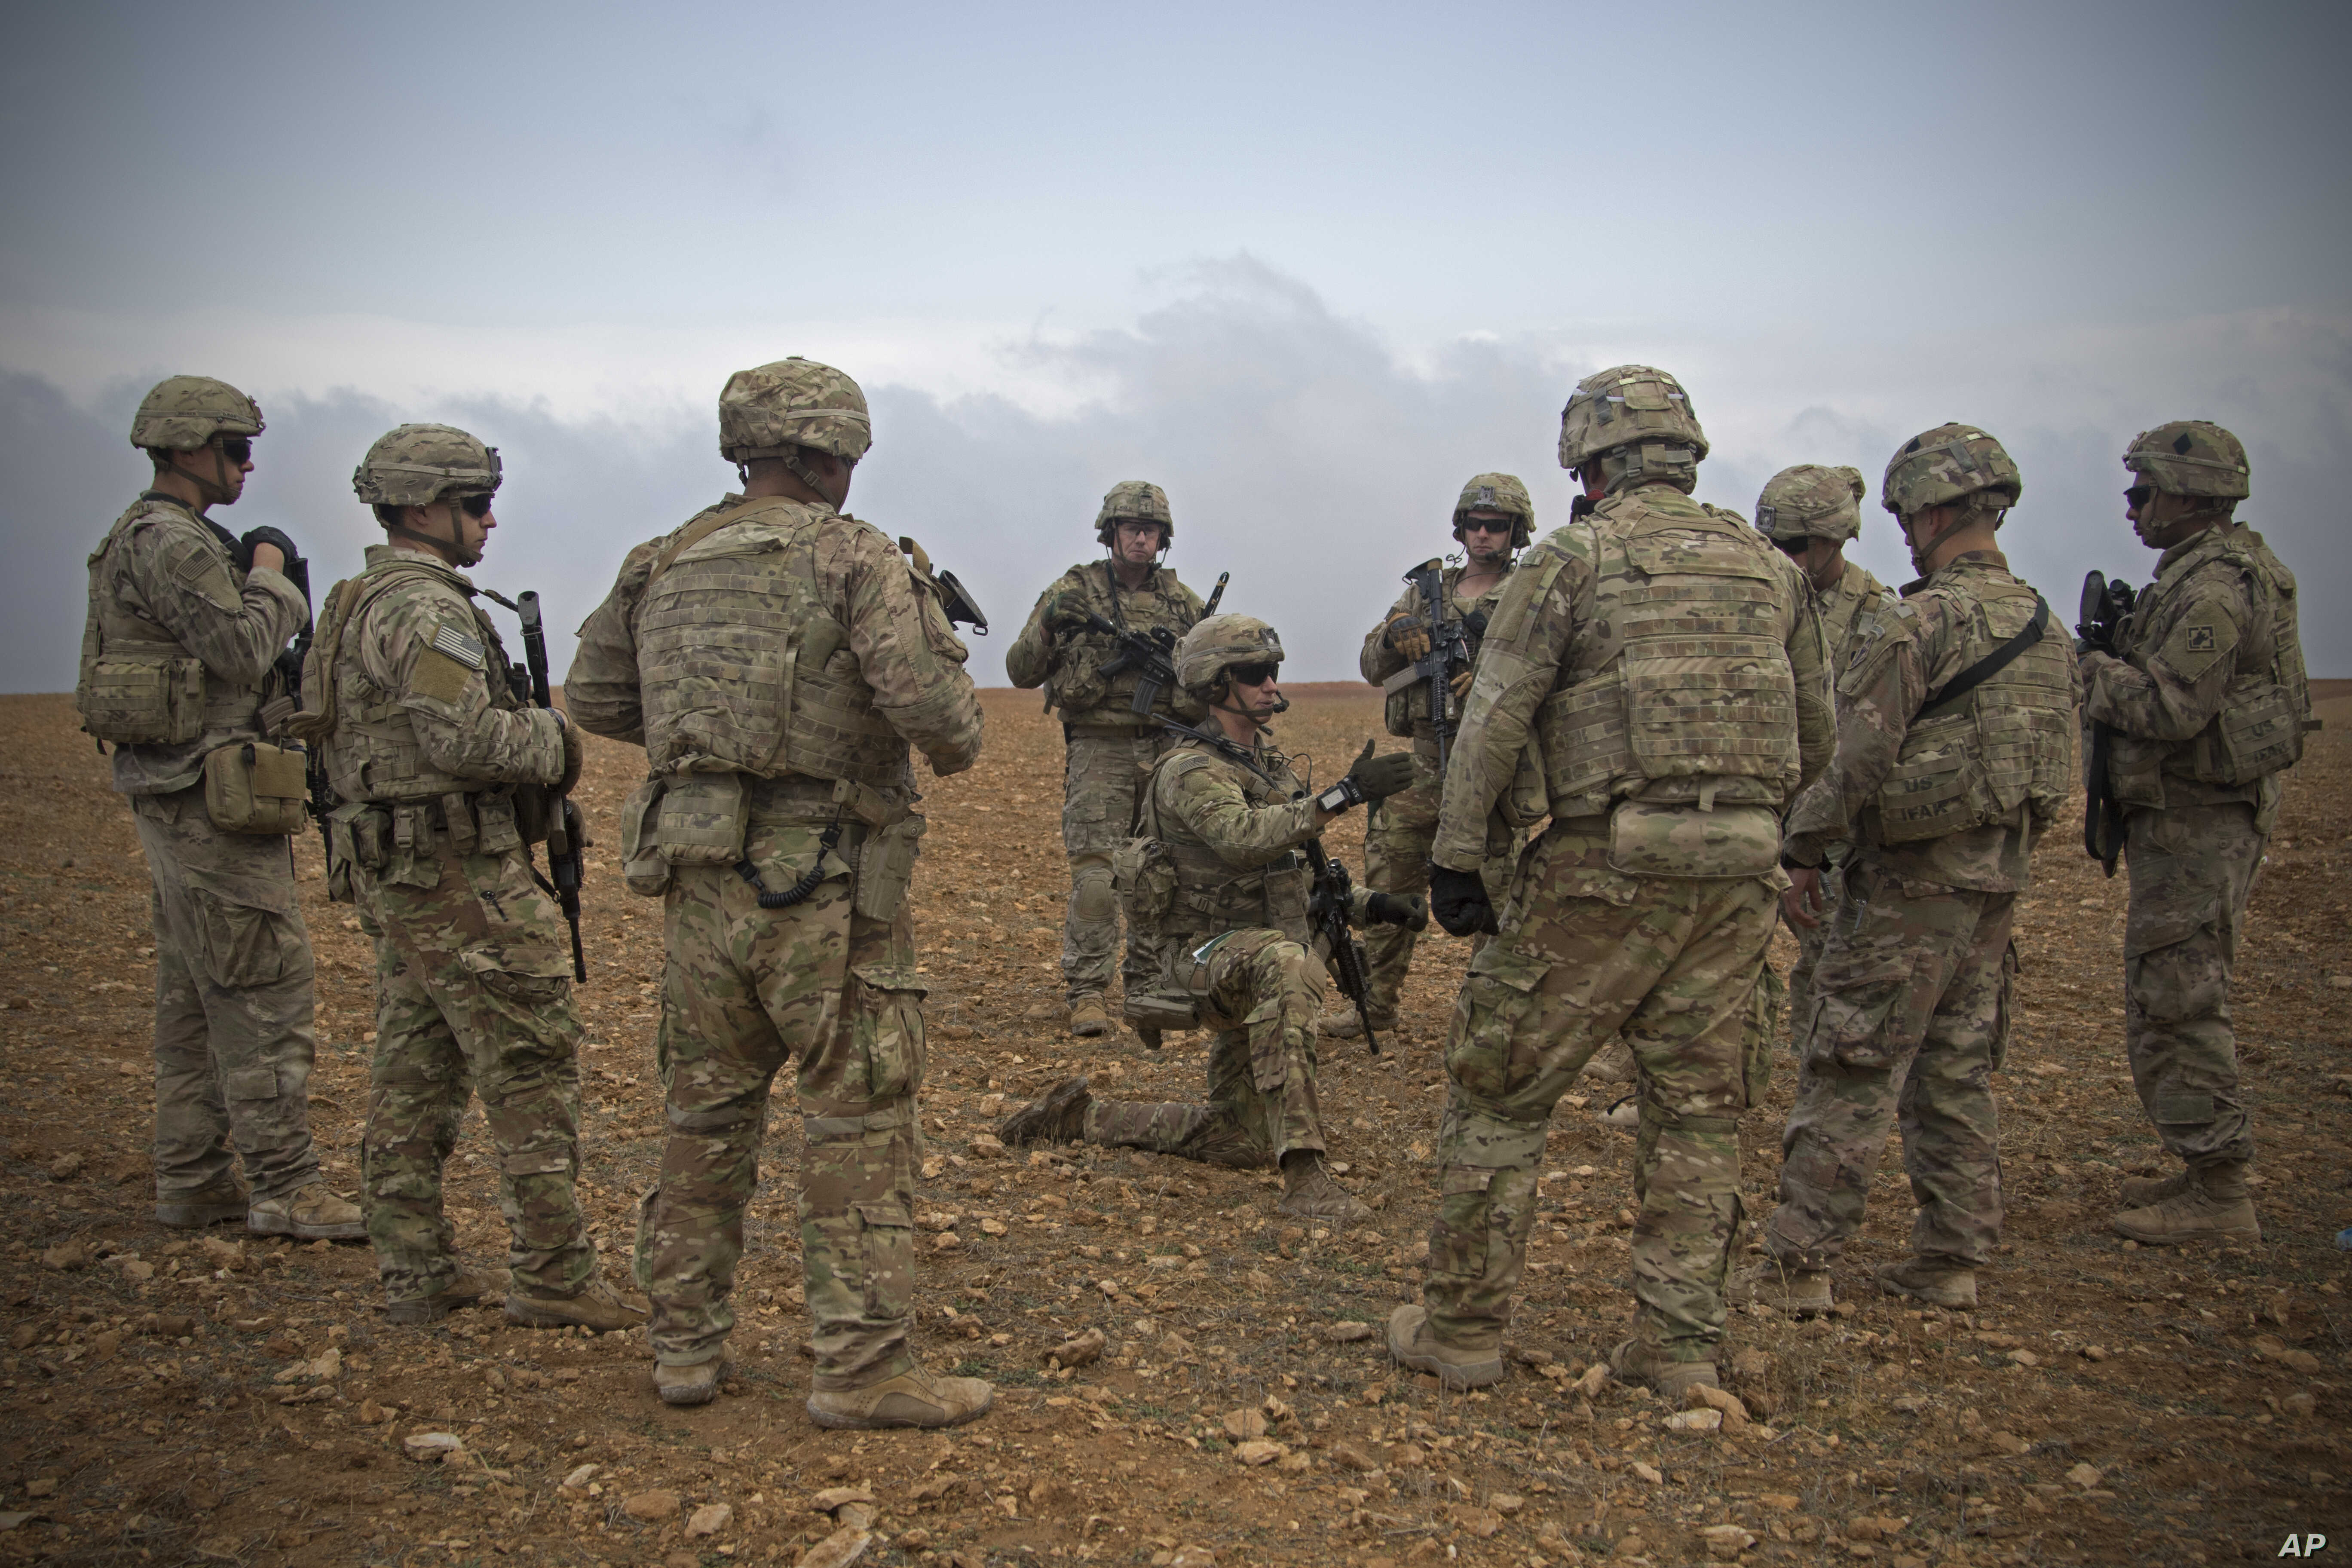 FILE - Photo released by the U.S. Army shows U.S. soldiers gathering for a brief during a combined joint patrol rehearsal in Manbij, Syria, Nov. 7, 2018.